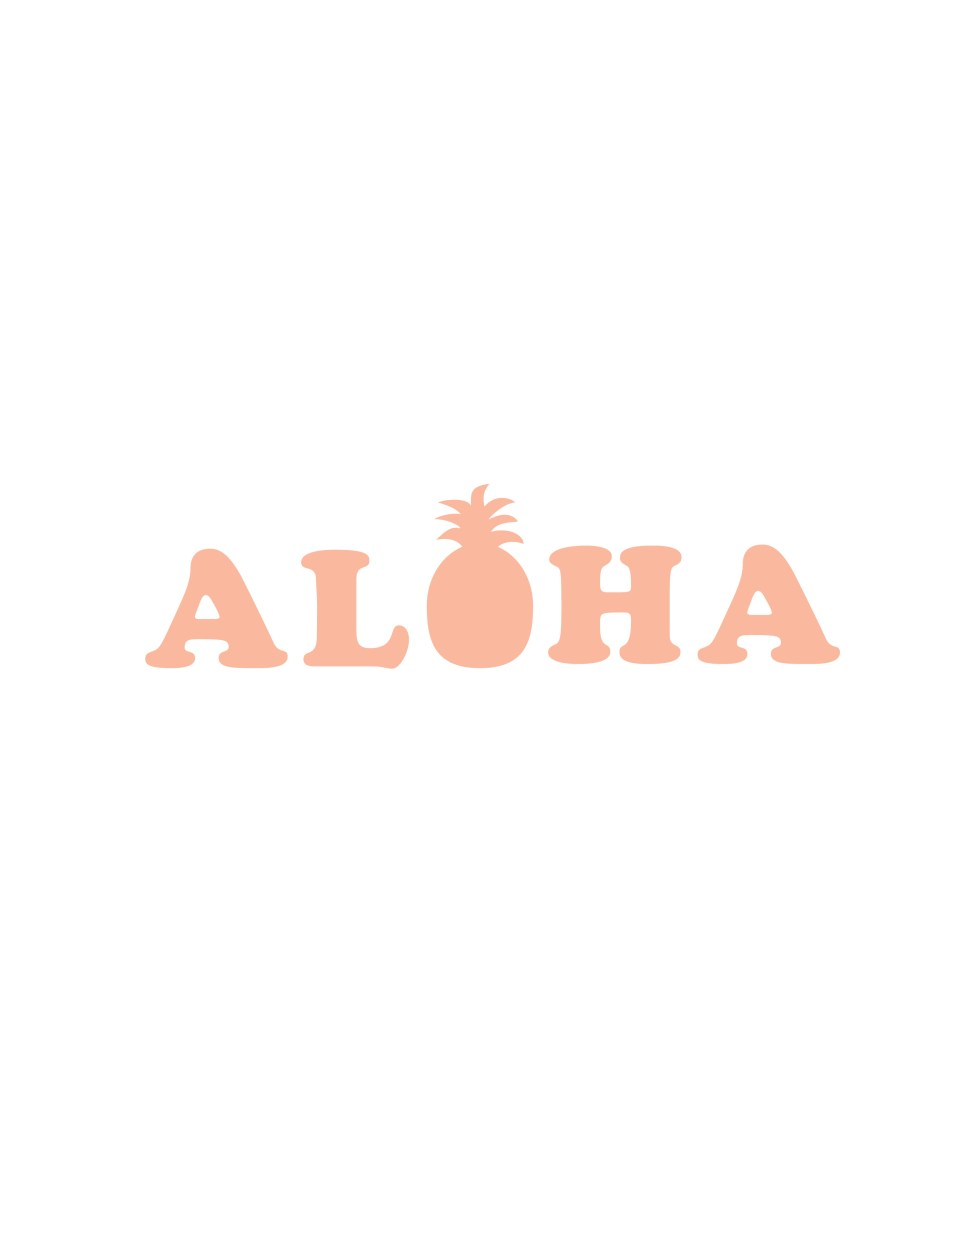 aloha printable with pineapple